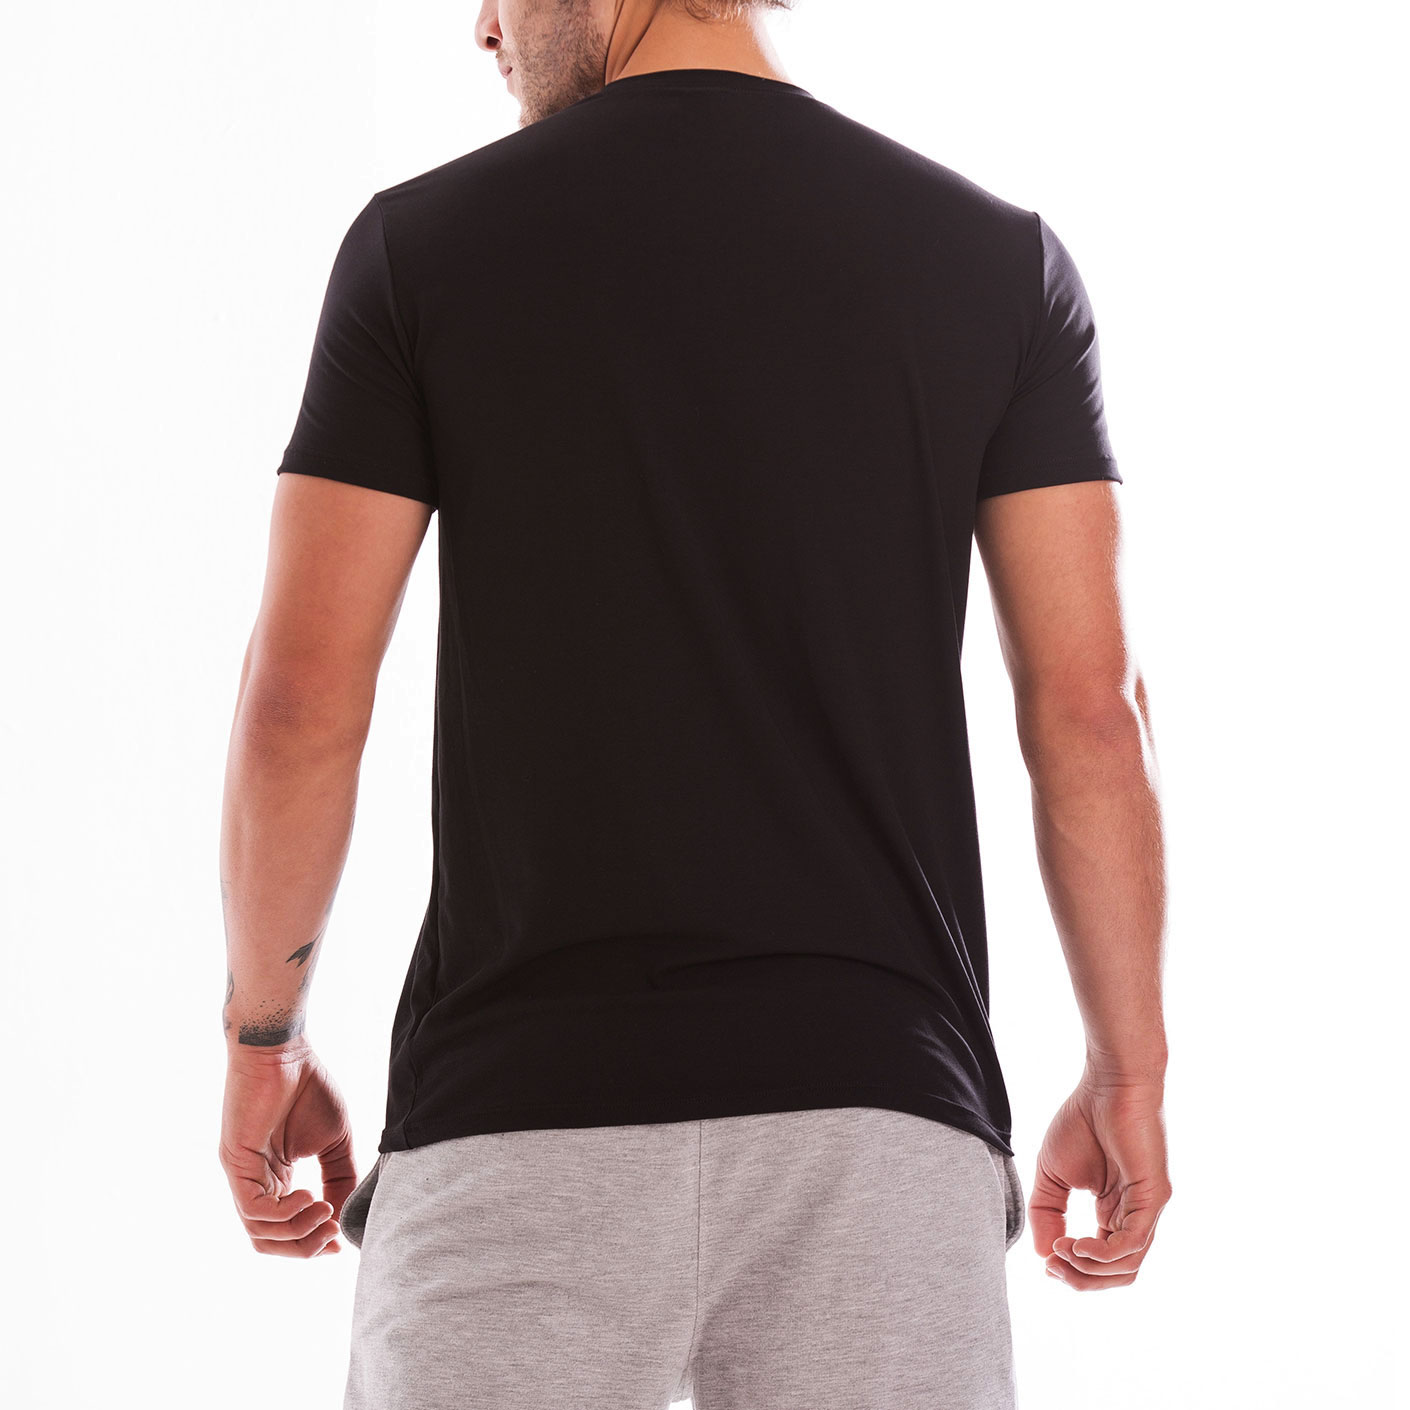 Mundo Unico Comfort Wear T-Shirt | Black